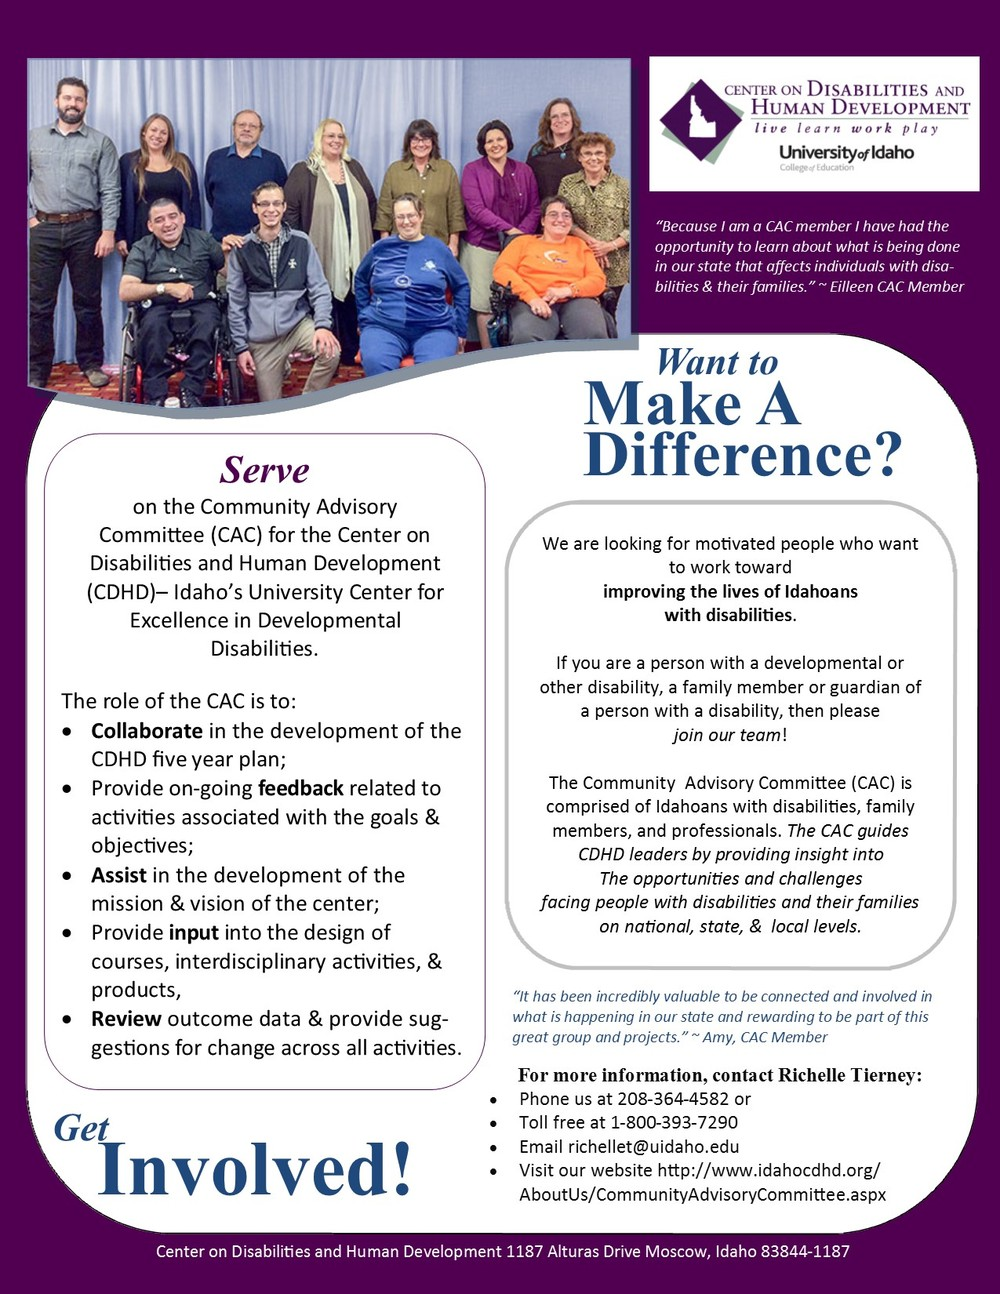 Want To Make A Difference Advocates For Inclusion